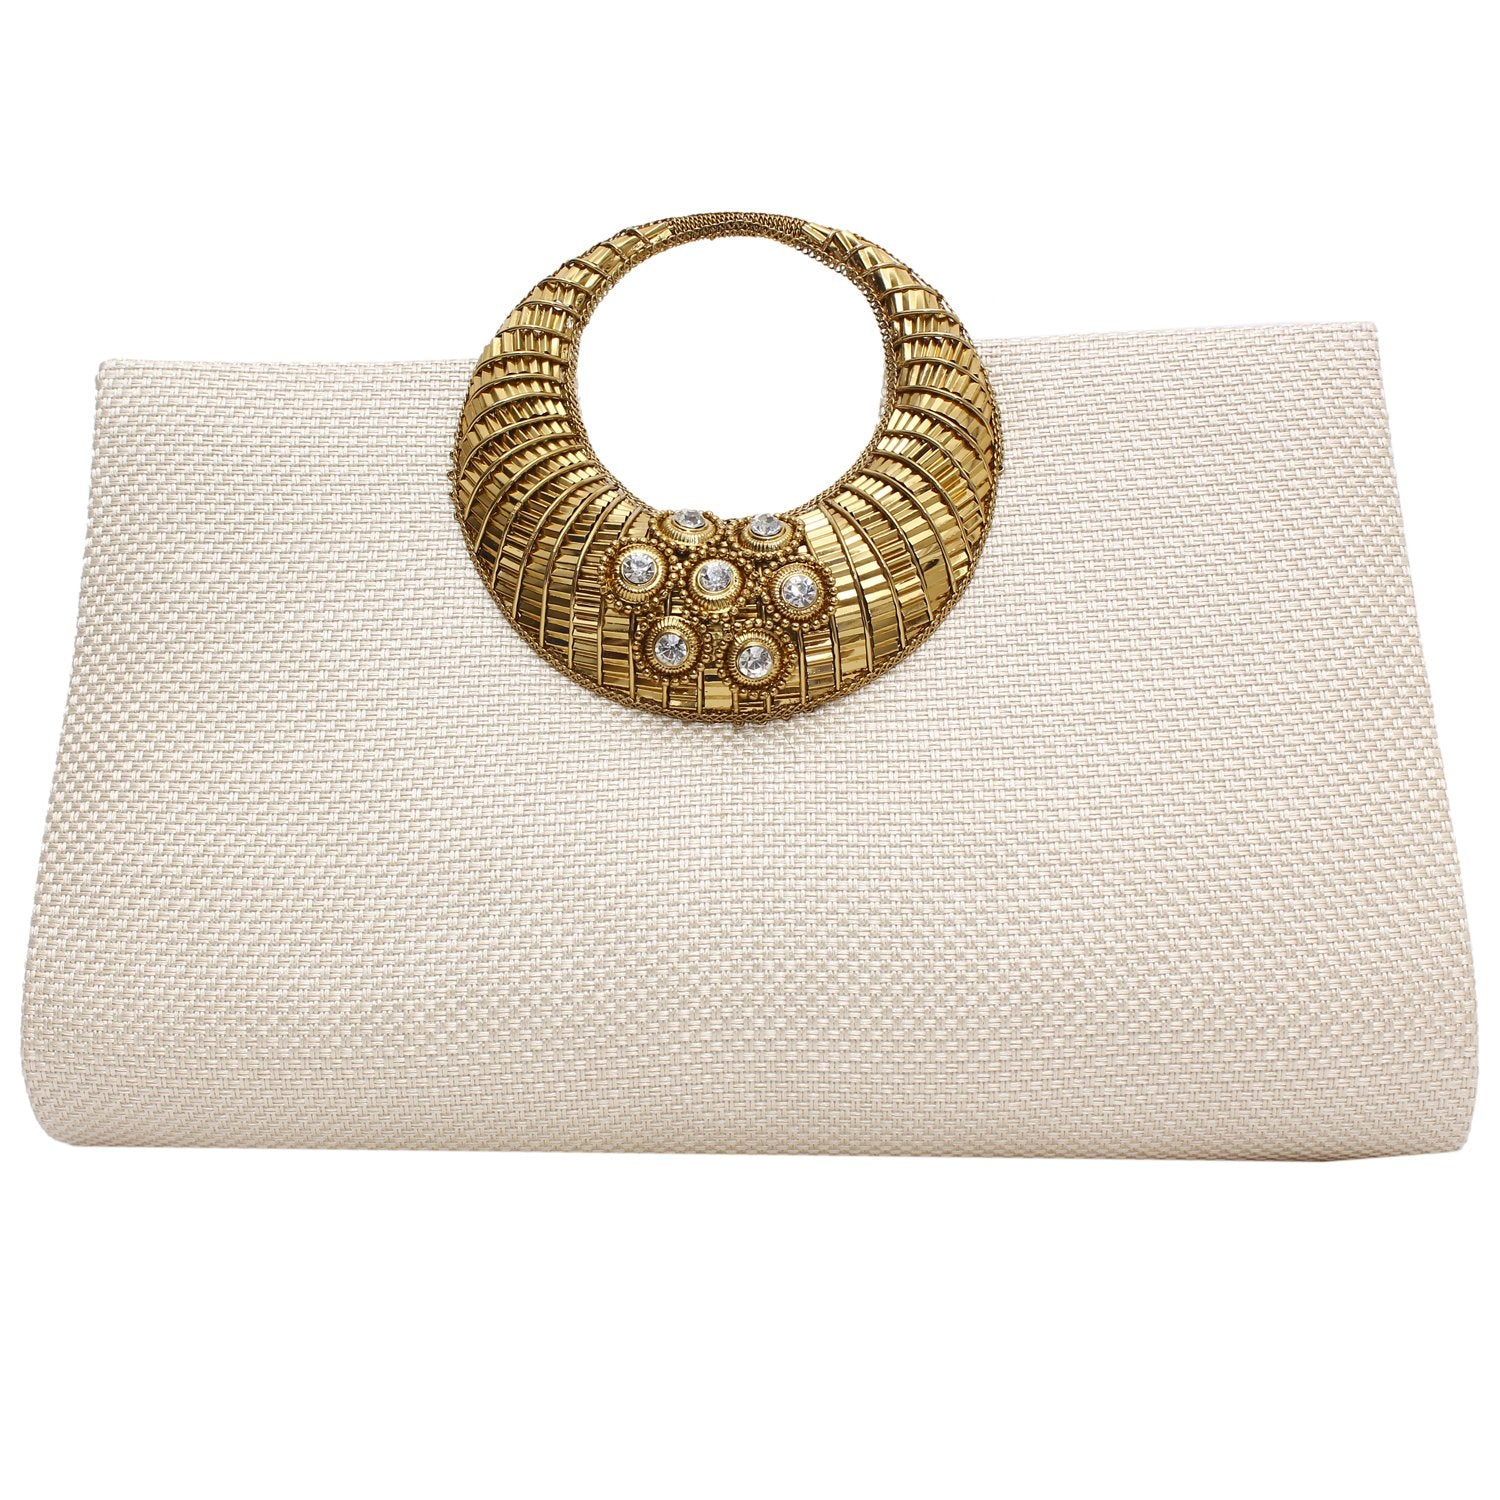 Ethnic Beads and Stylish Stone Jute Clutch (White) - Bagaholics Gift